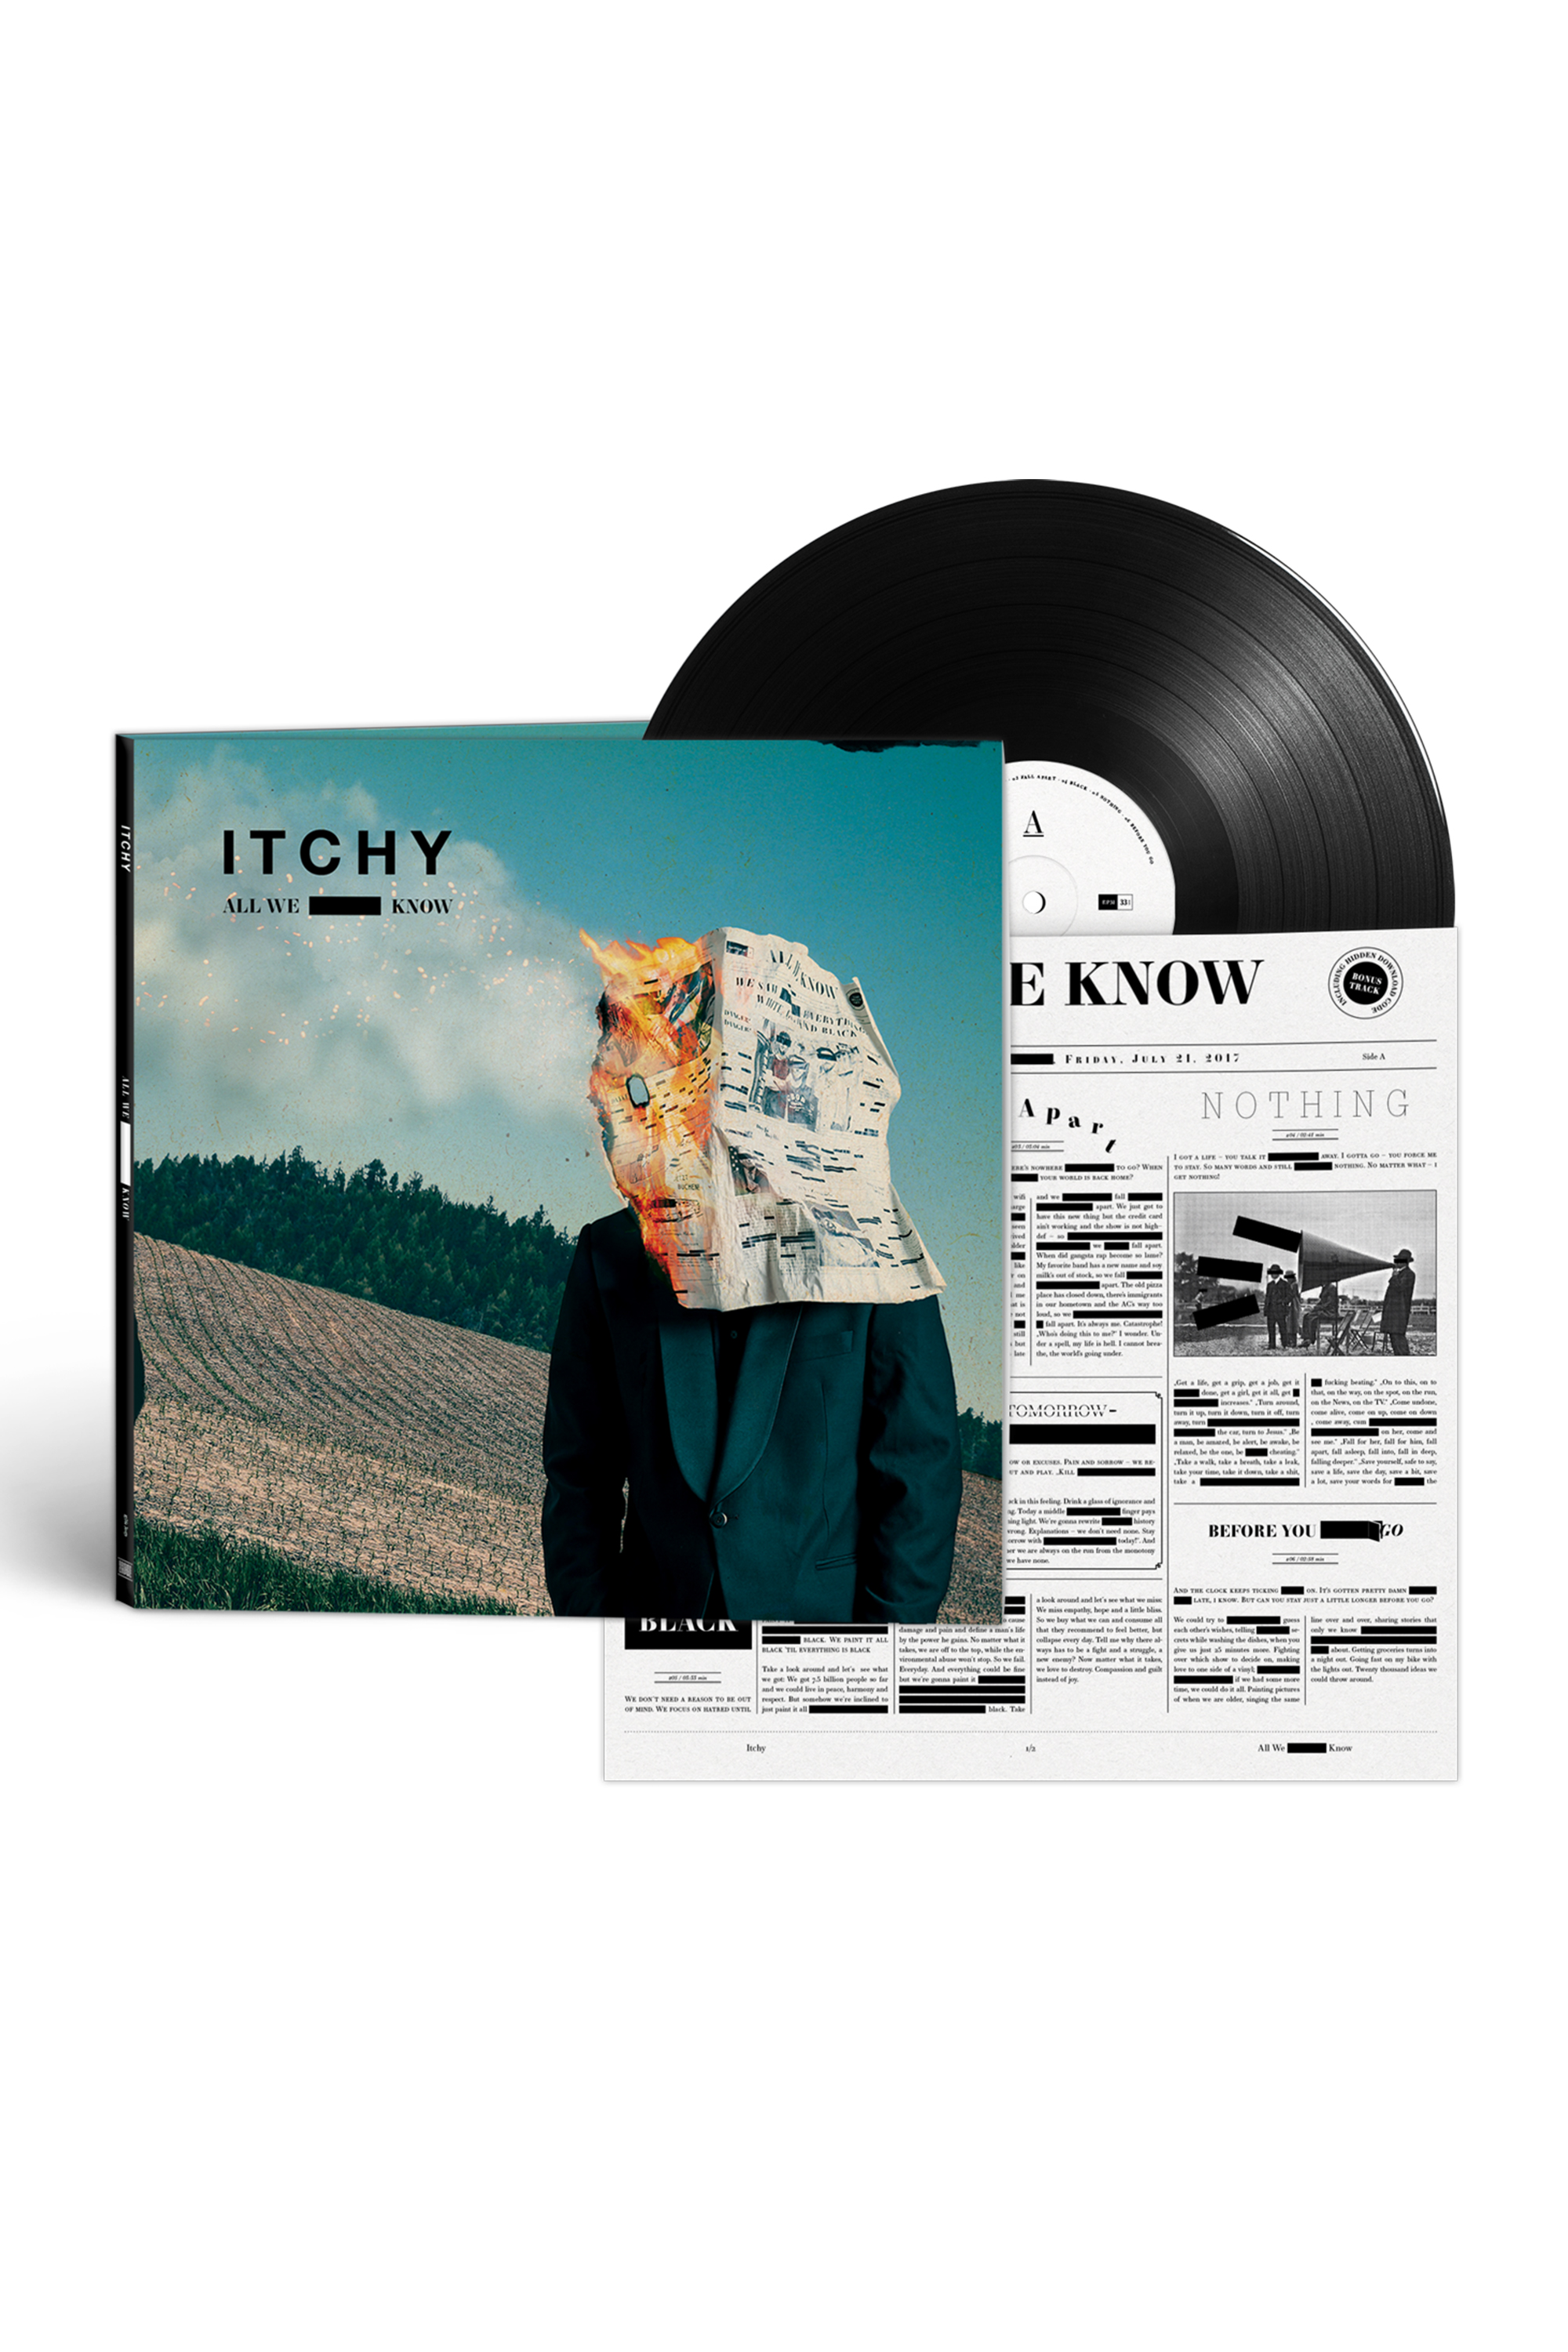 All We Know (Ltd. Vinyl LP Deluxe Box)